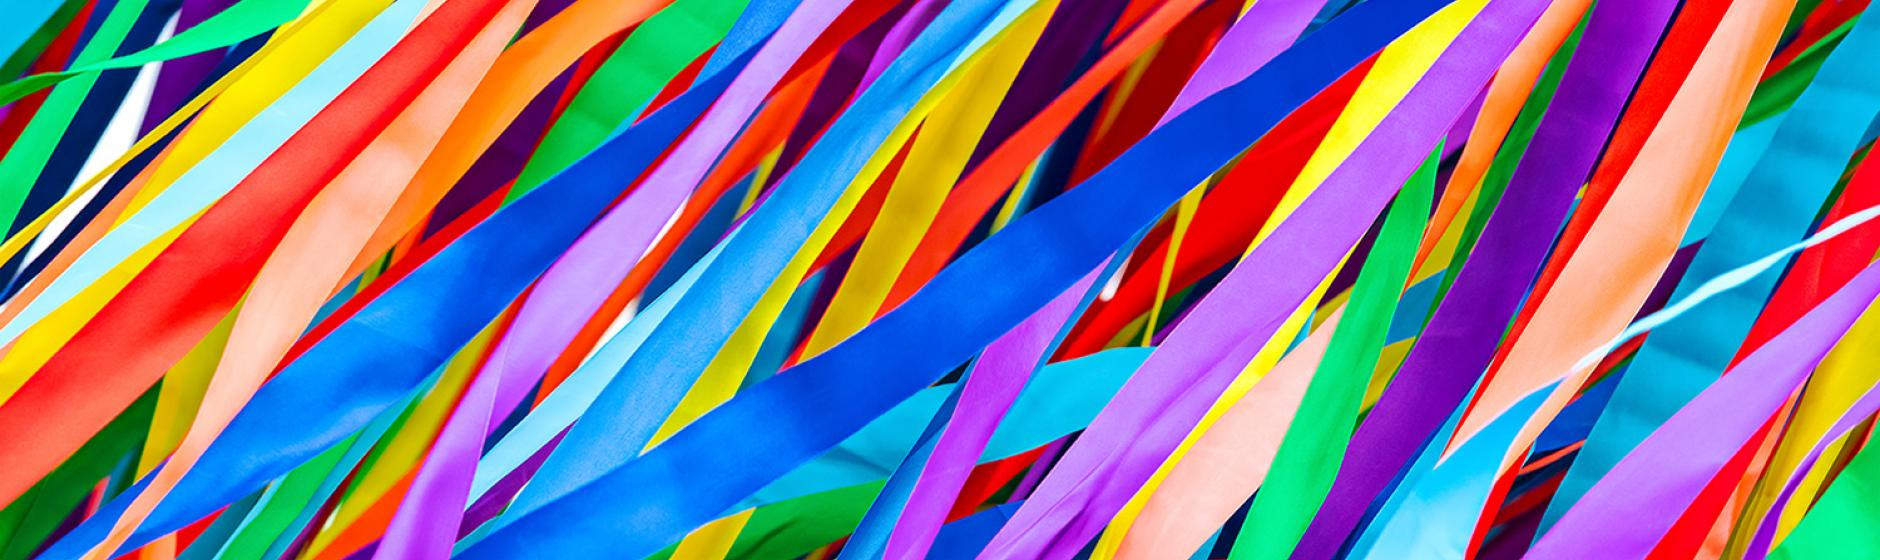 Our Culture Page Banner Image of Ribbons